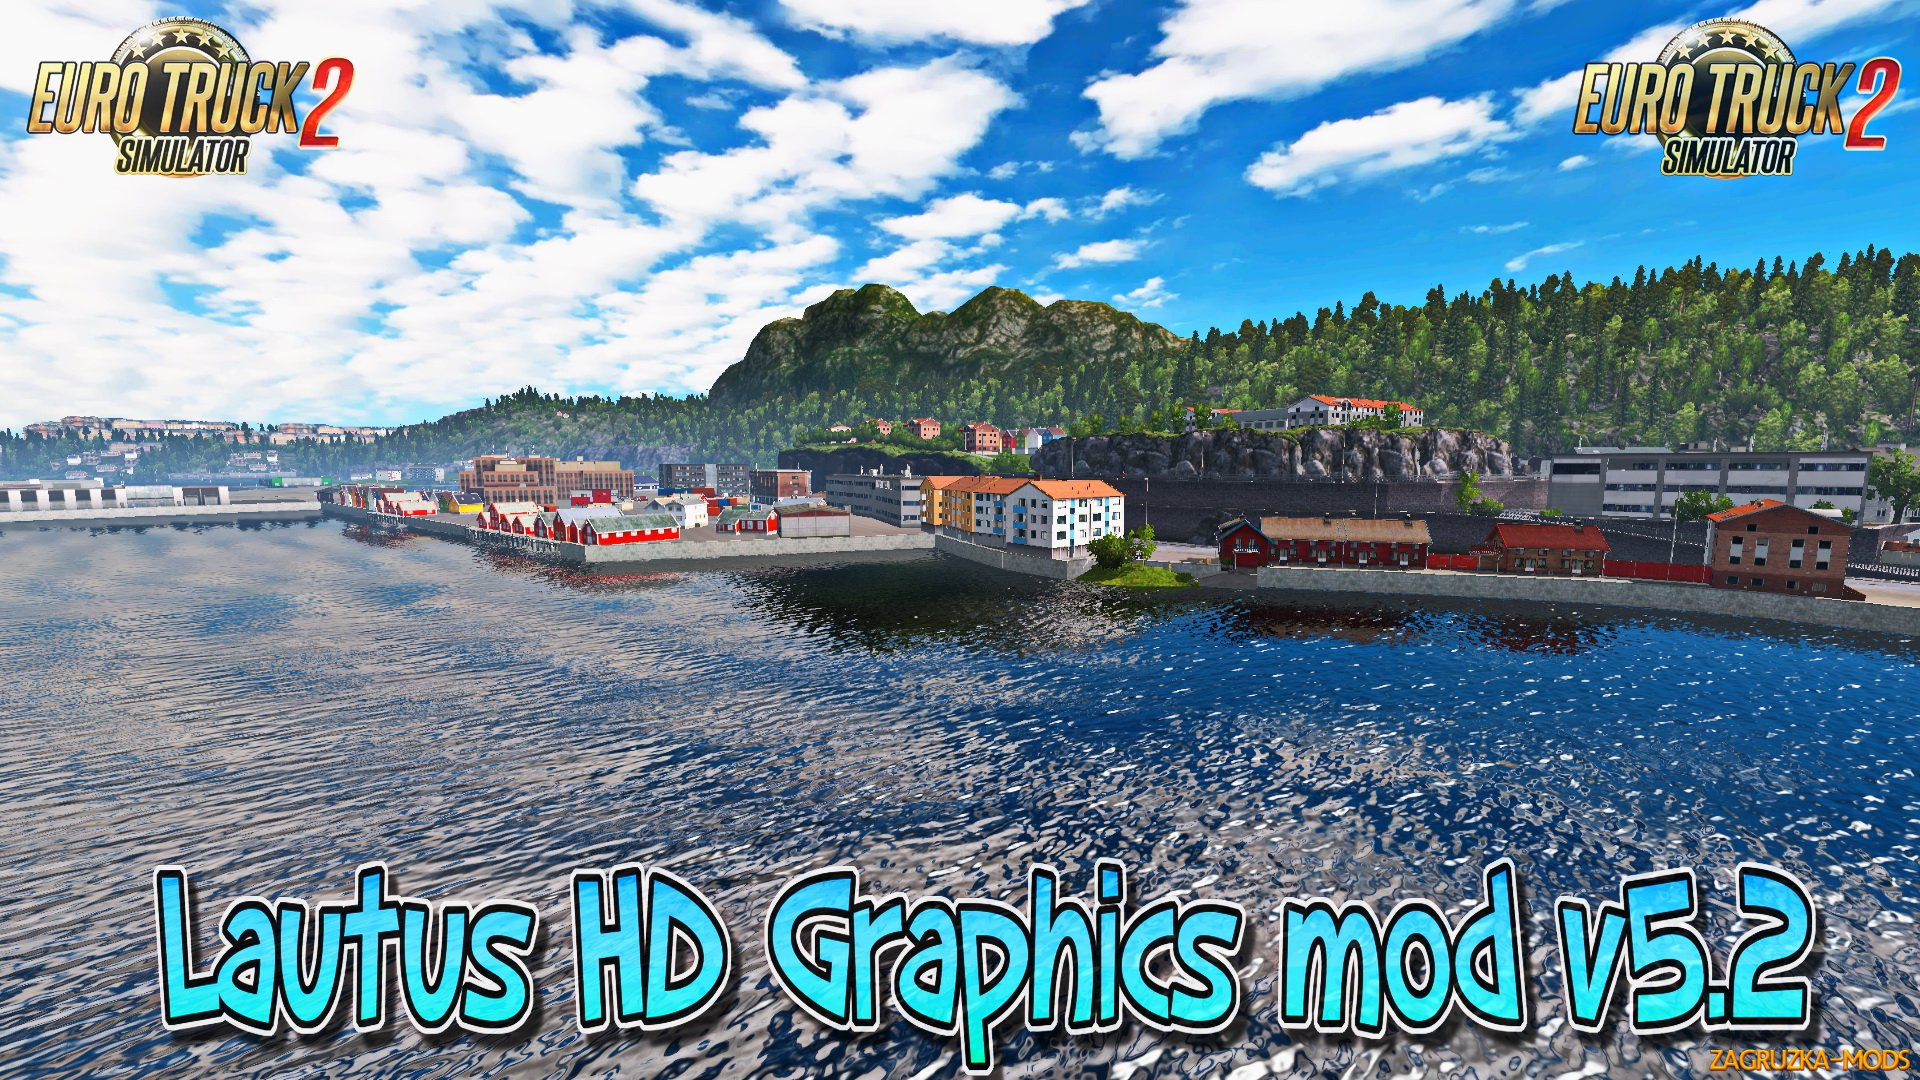 Lautus HD Graphics mod v5.2 (v1.23.x) for ETS 2